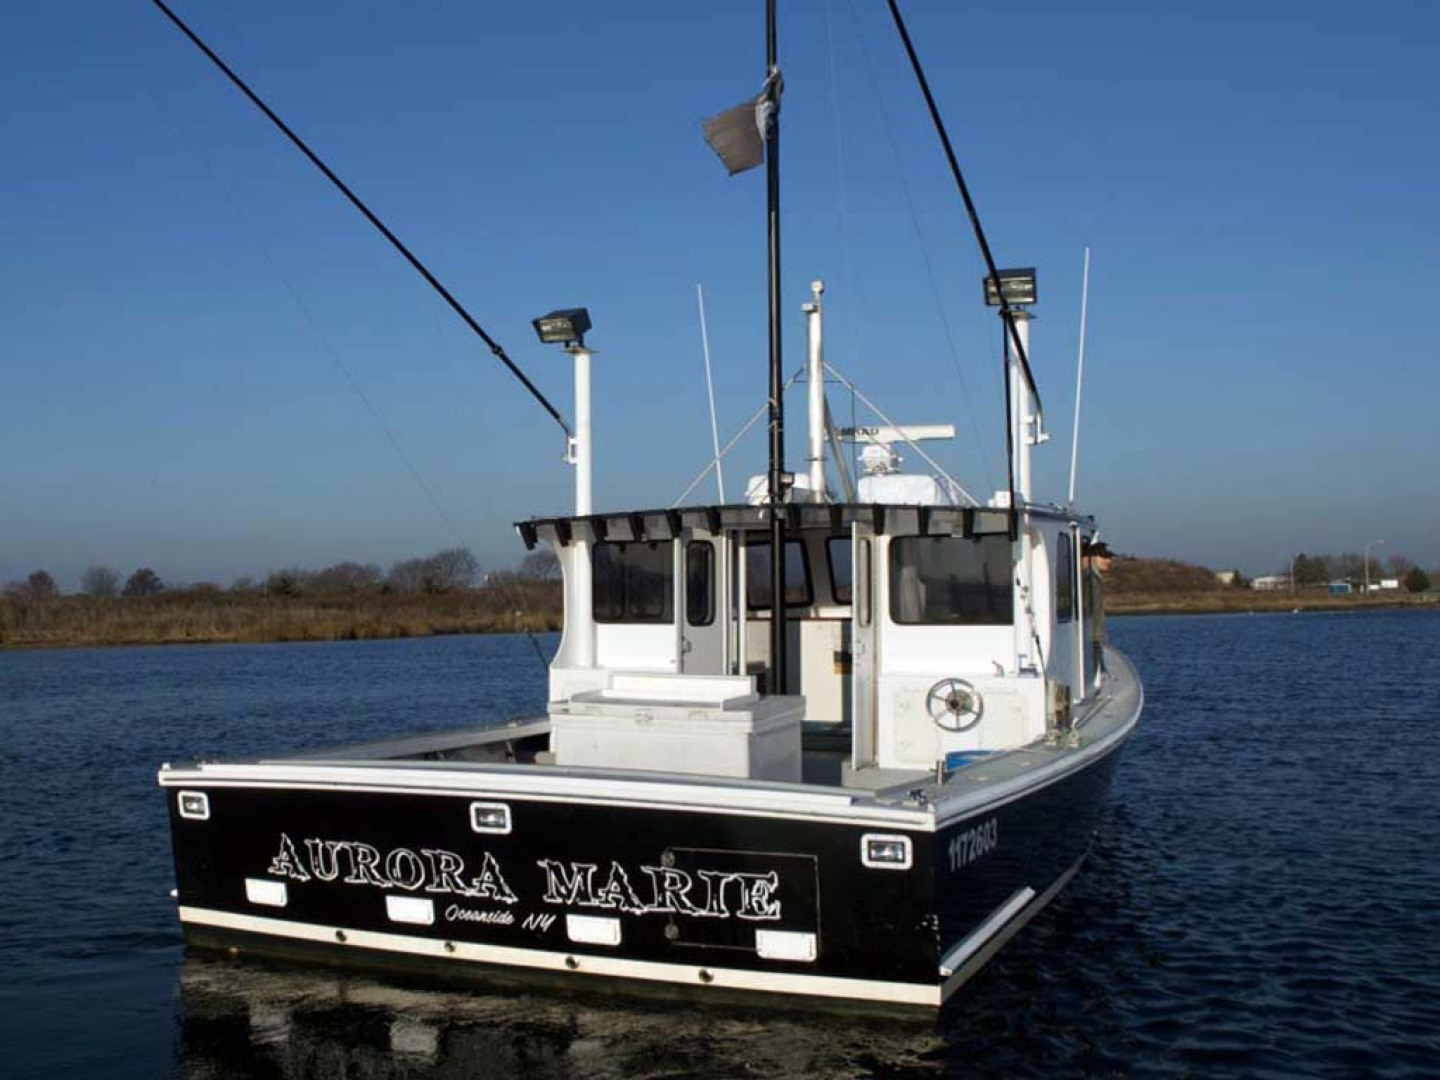 Willis Beal-RP40 2003-Aurora Marie Long Island-New York-United States-Transom-1093194 | Thumbnail